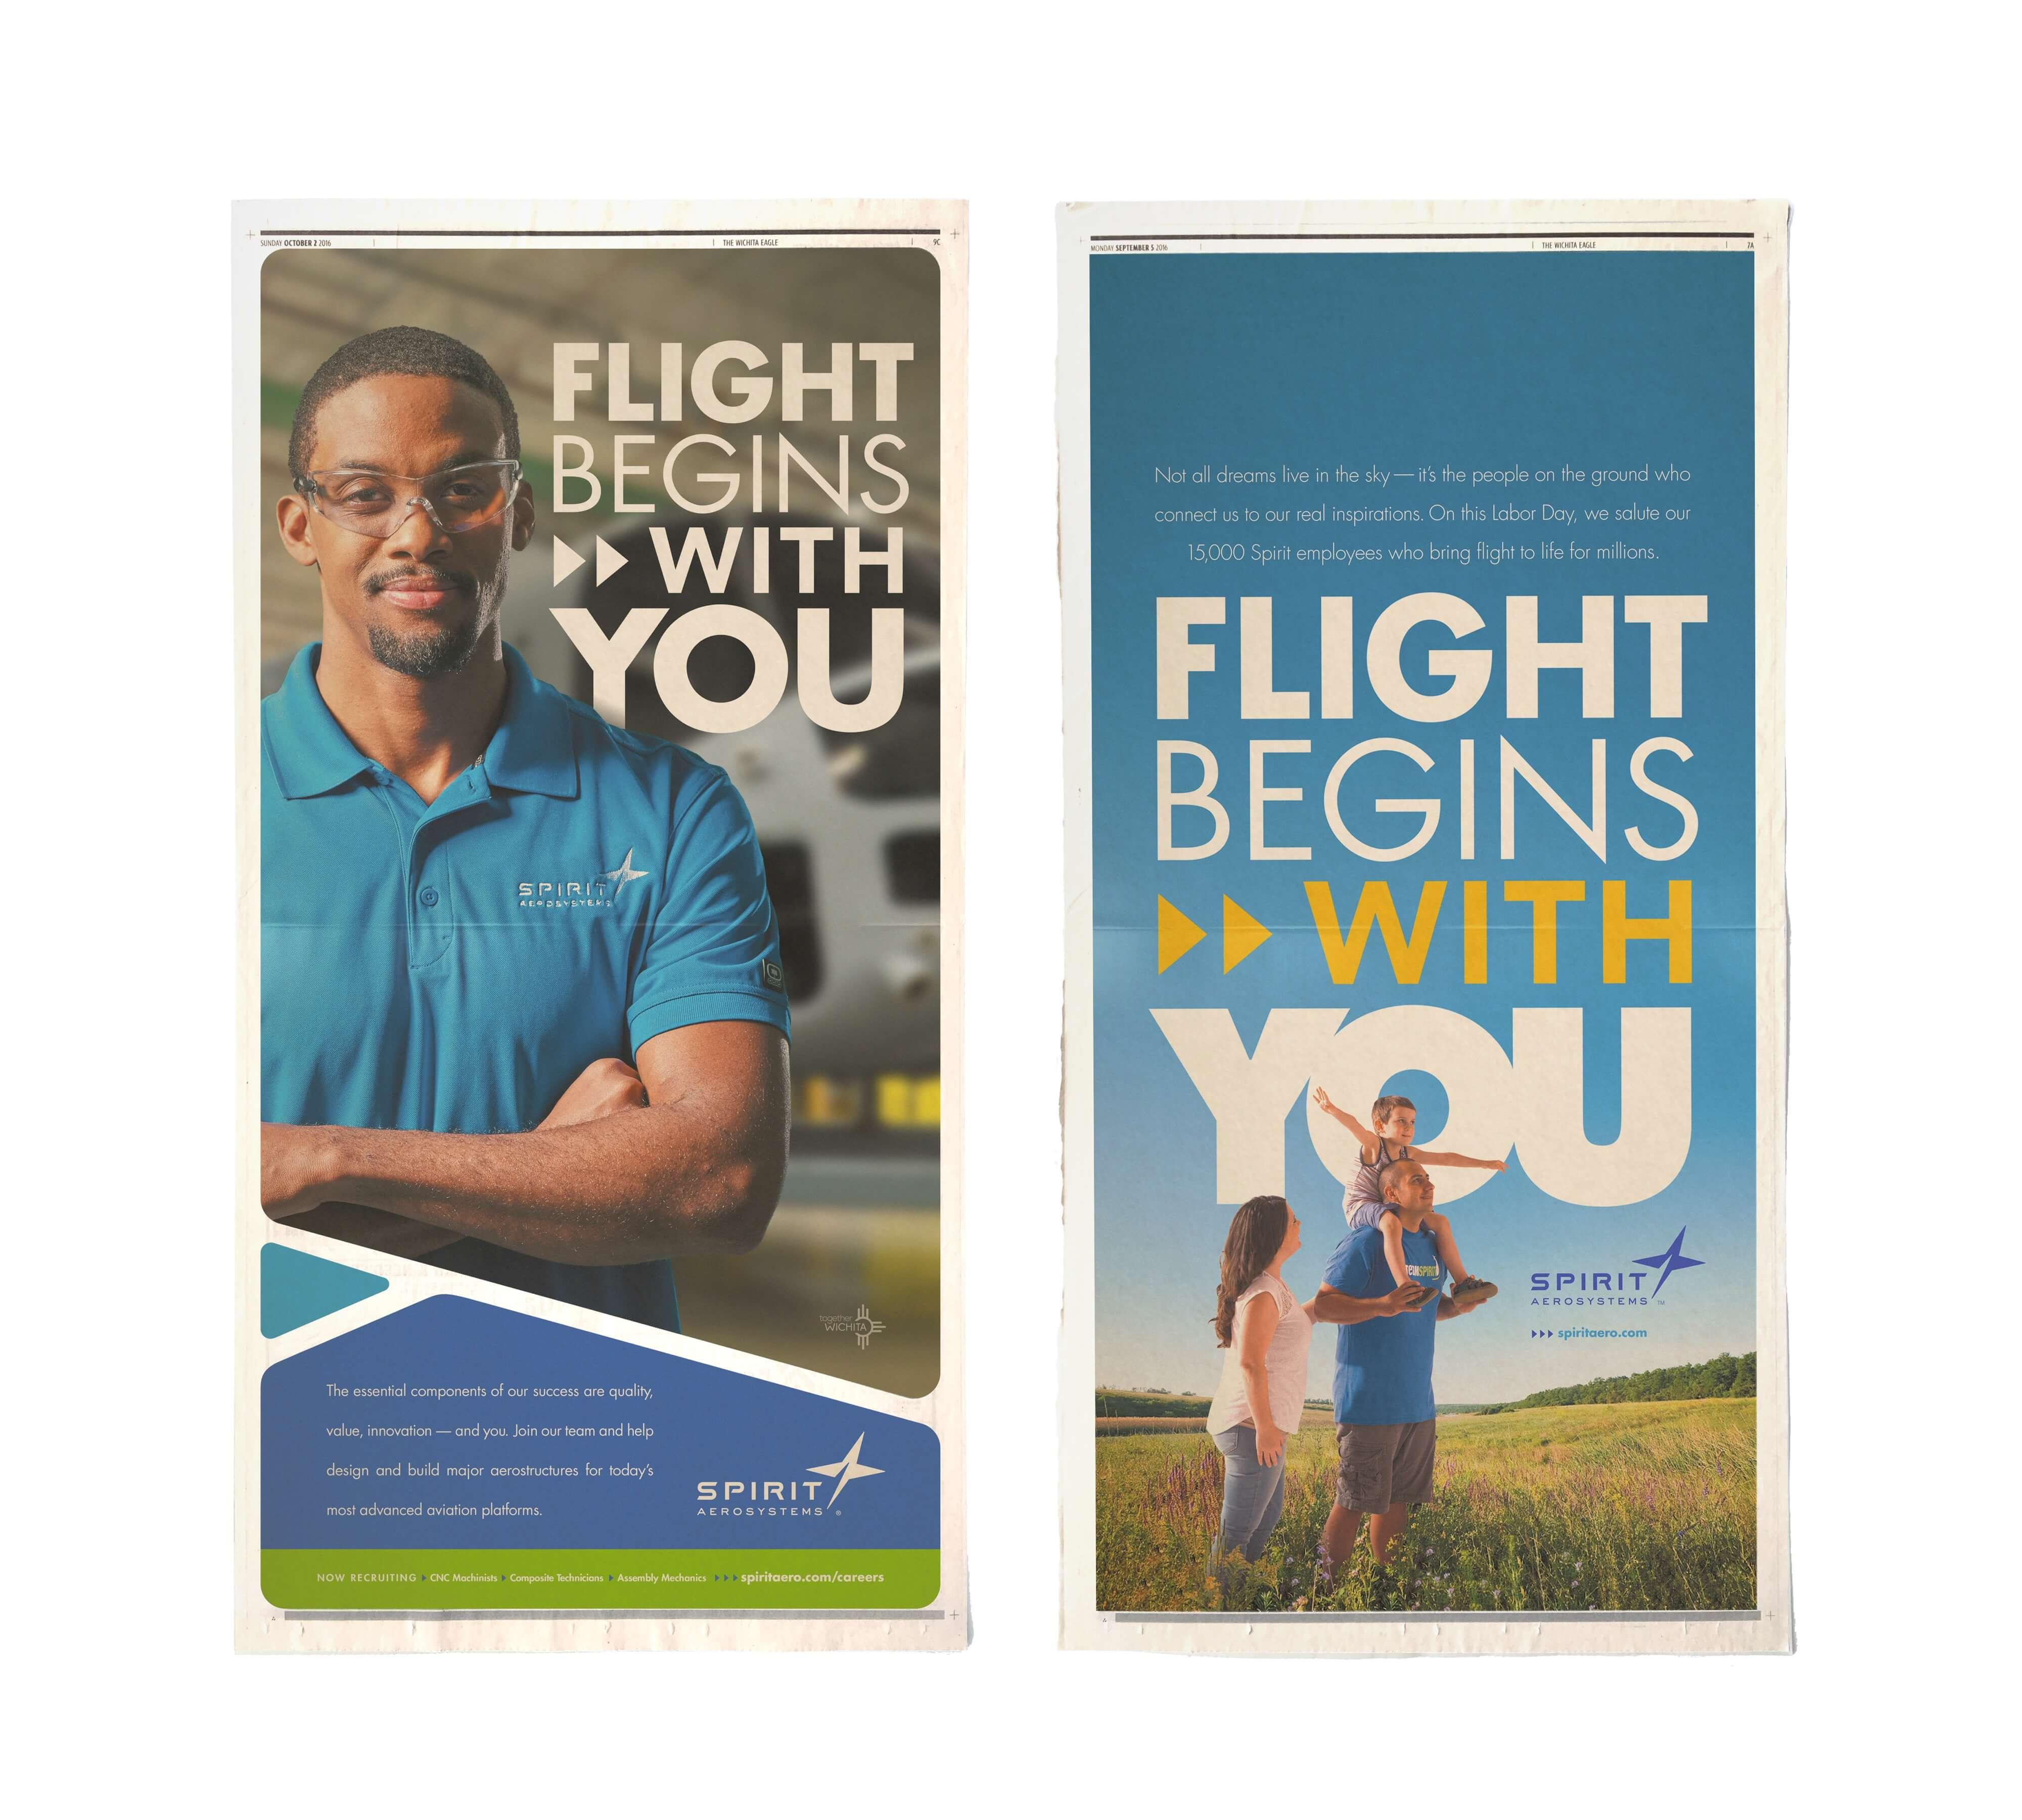 Spirit AeroSystems newspaper ad examples